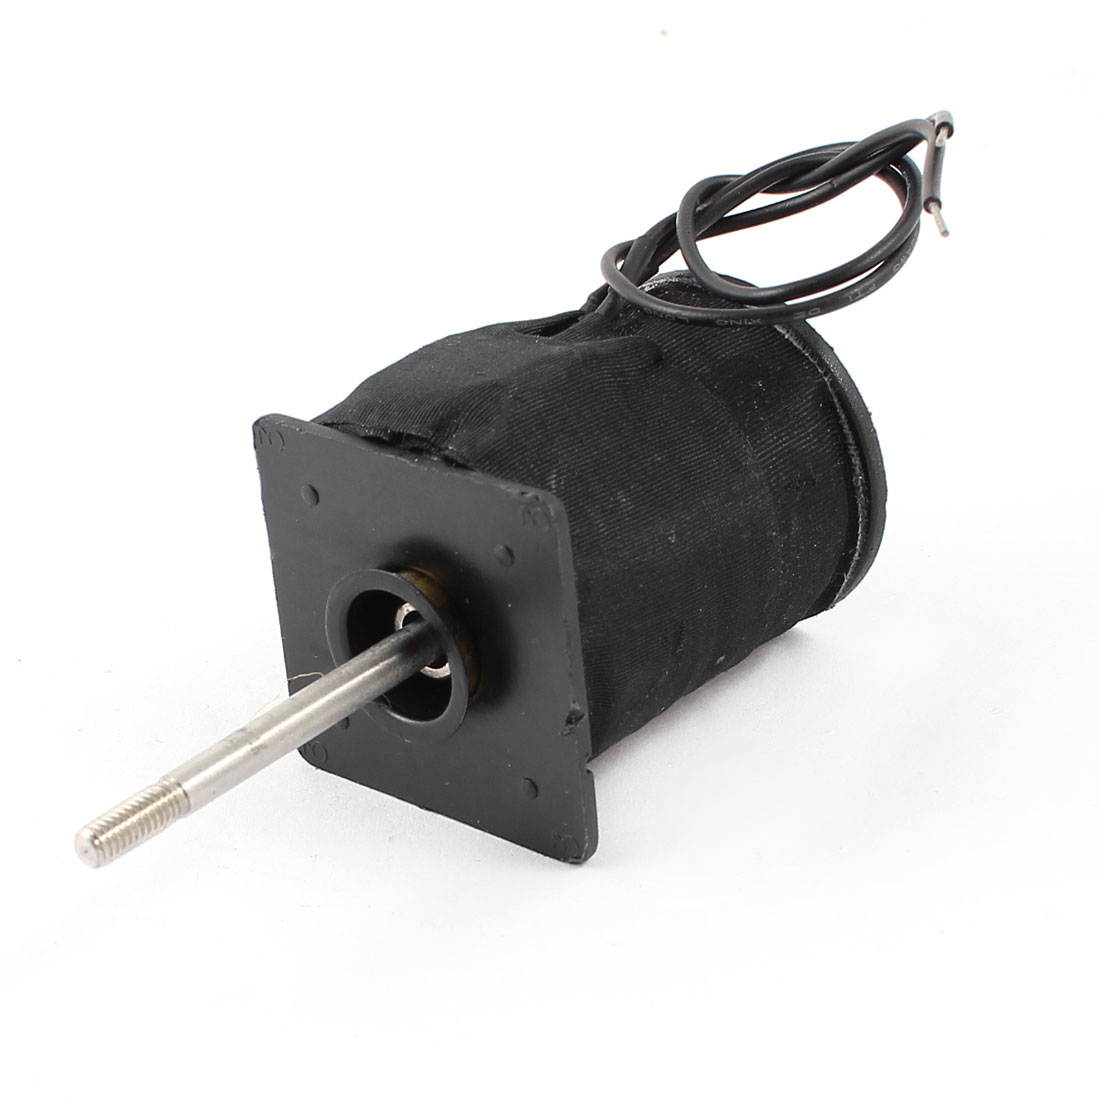 10mm/6Kg 13.2Lb Wired Push Pull Type Solenoid Electromagnet DC 220V 0.95A